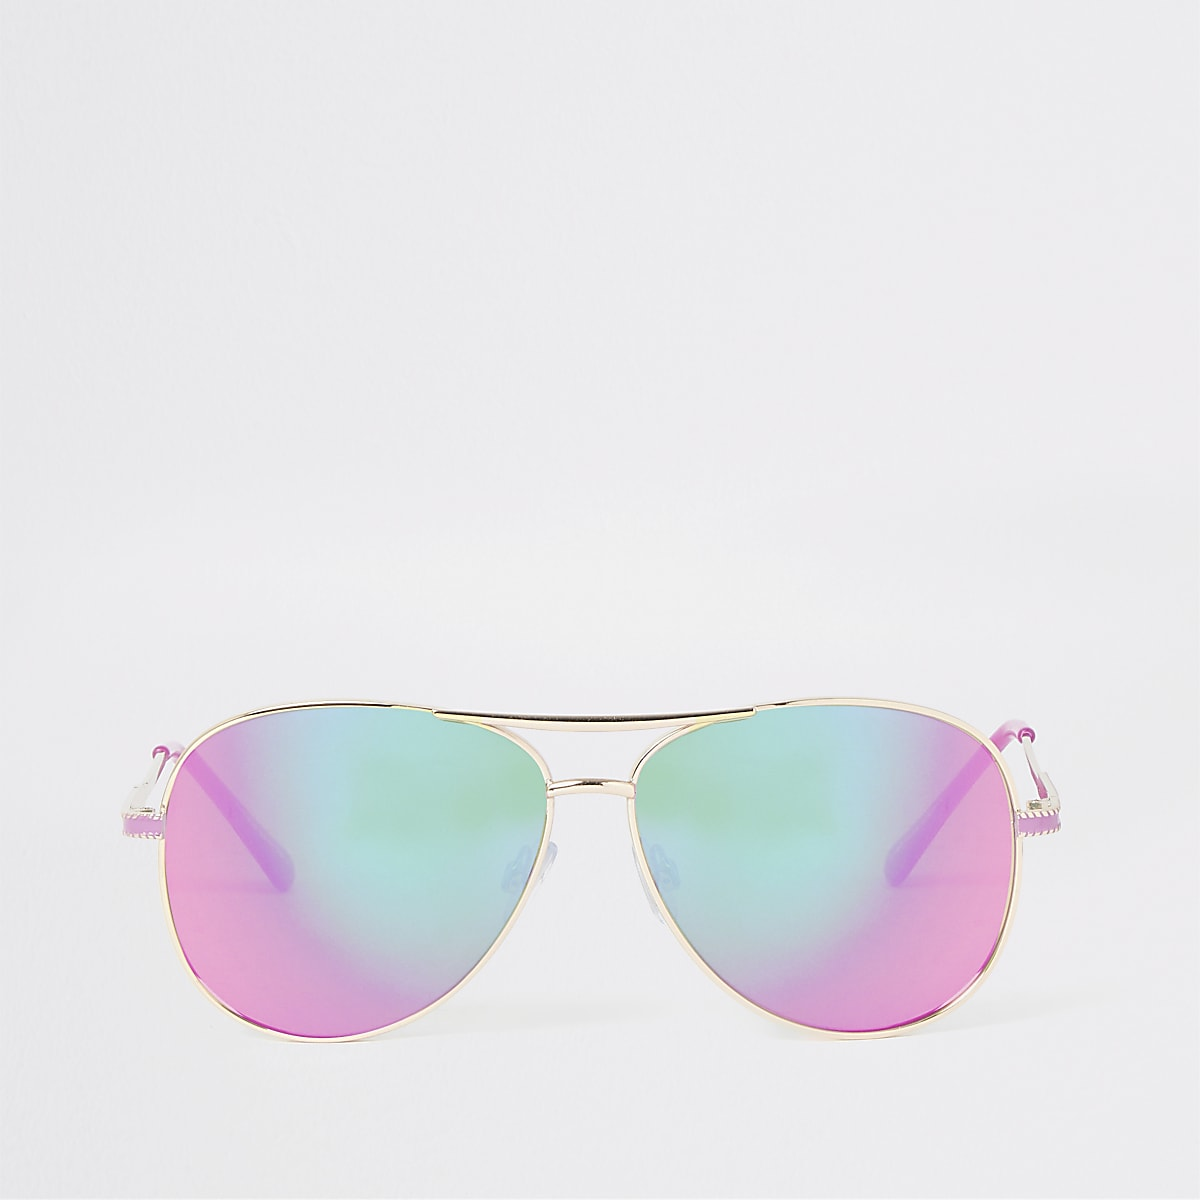 Gold color pink lens aviator sunglasses